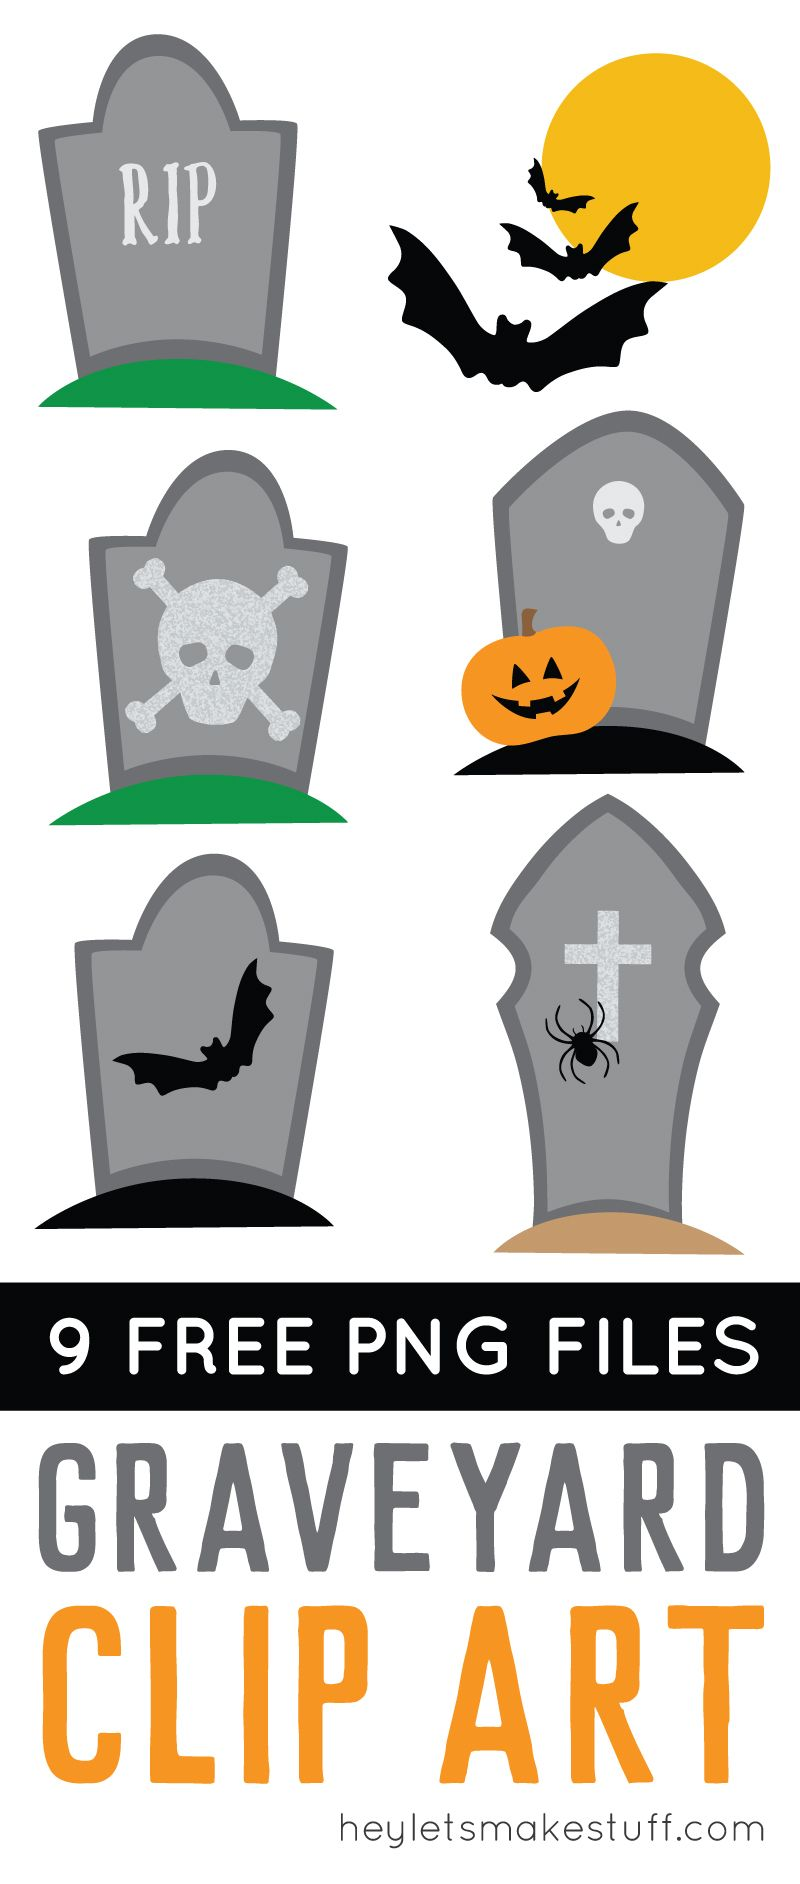 rest in peace download these haunted graveyard clip art files rh pinterest com au graveyard clipart graveyard clipart black and white